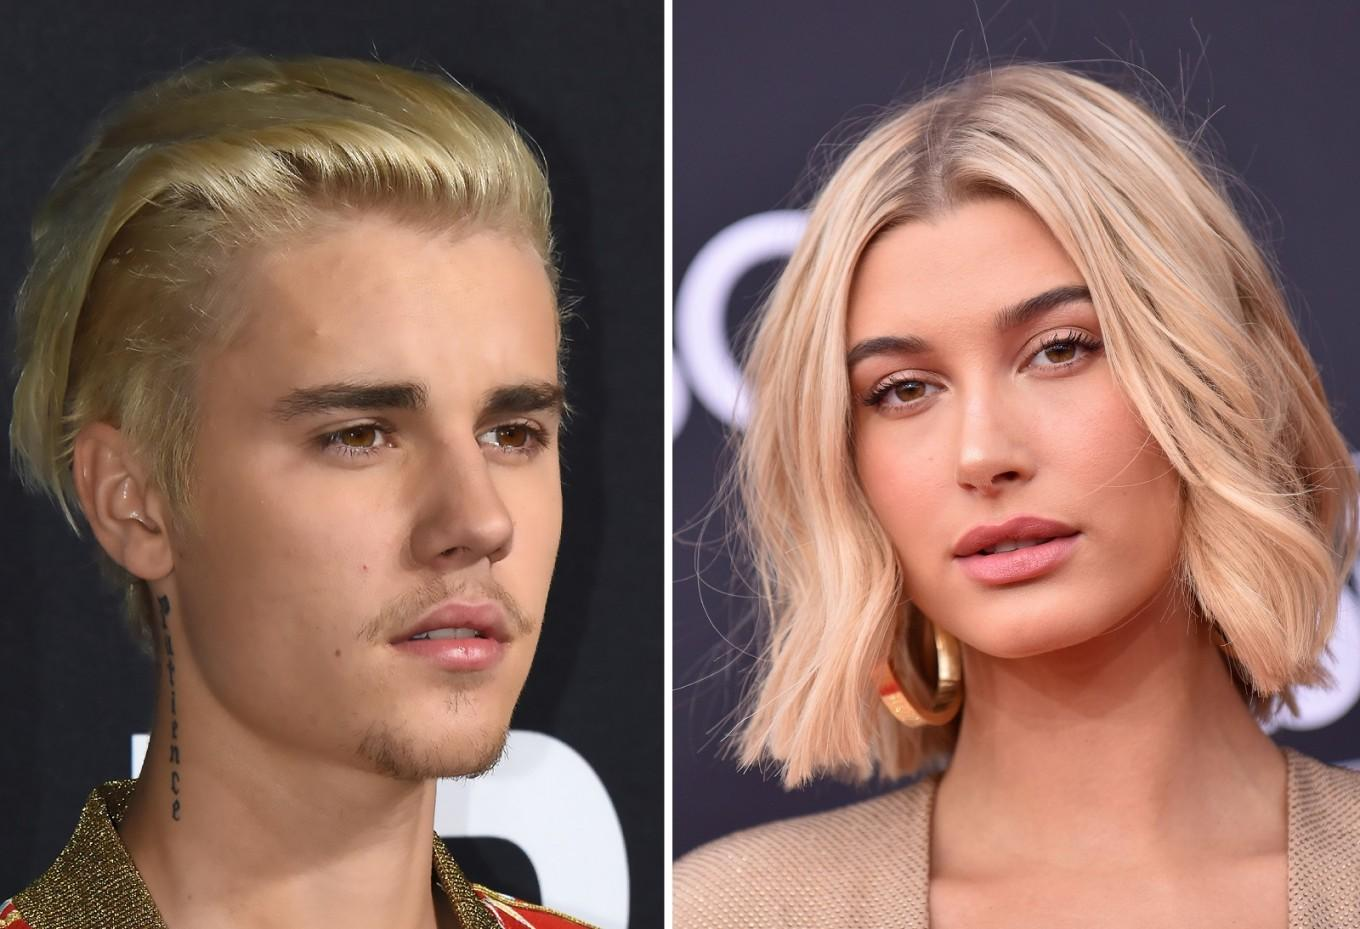 Justin Bieber Anxious Over His And Hailey Baldwin's Second Wedding - Here's Why!